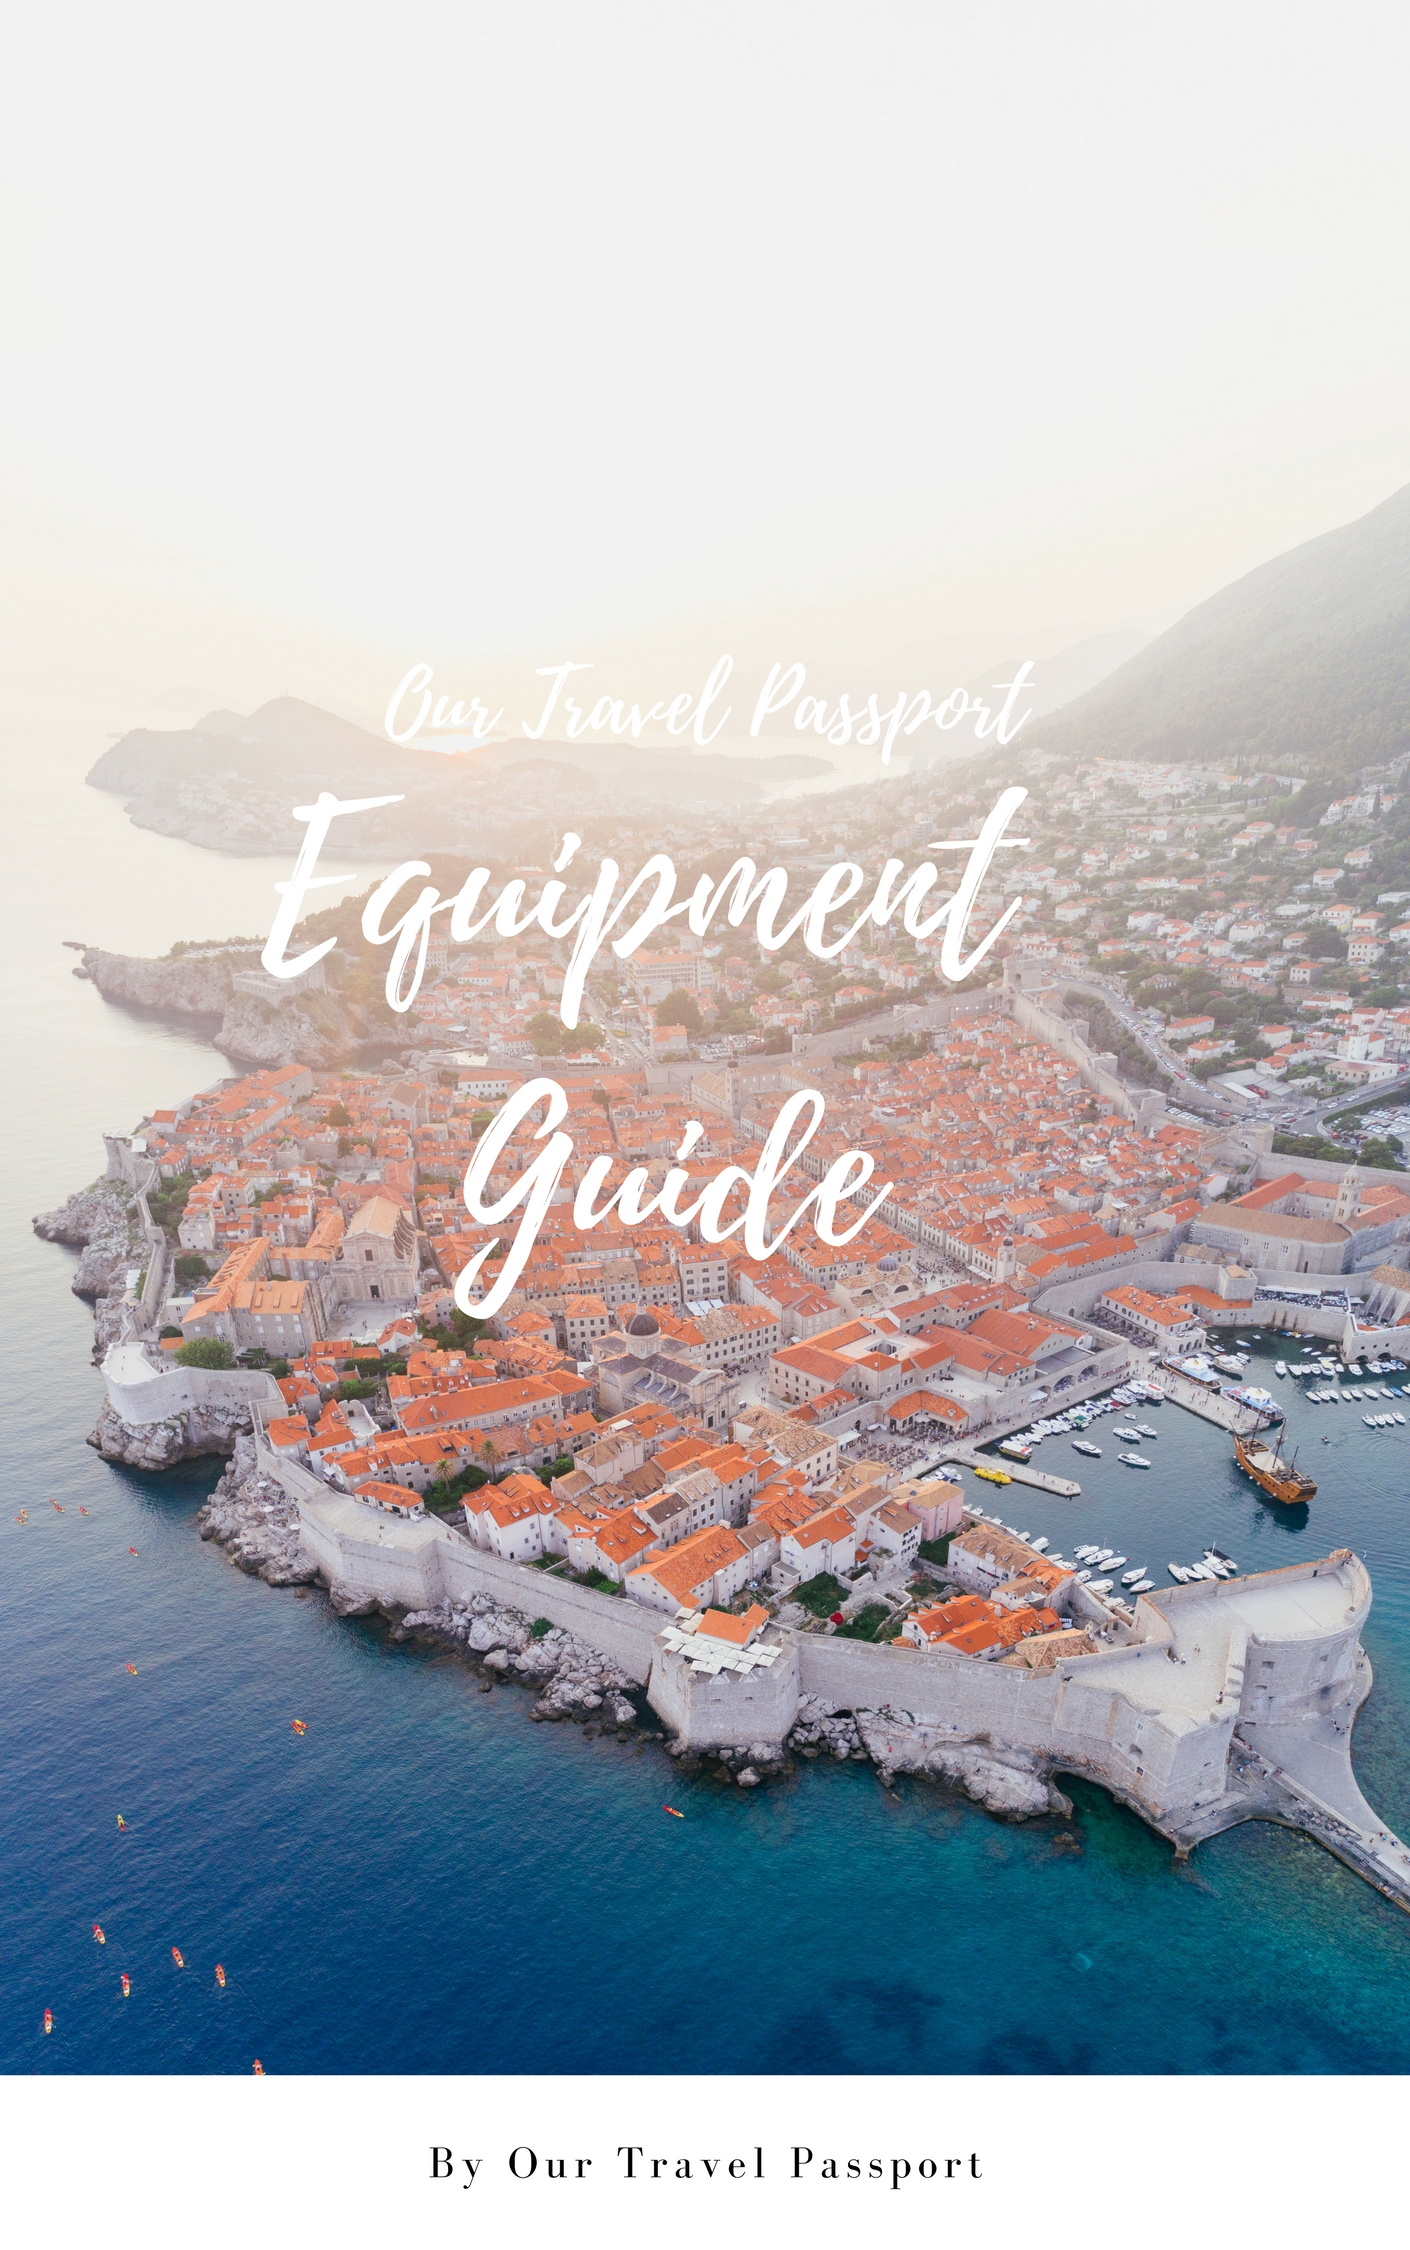 Our Travel Passport Equipment Guide